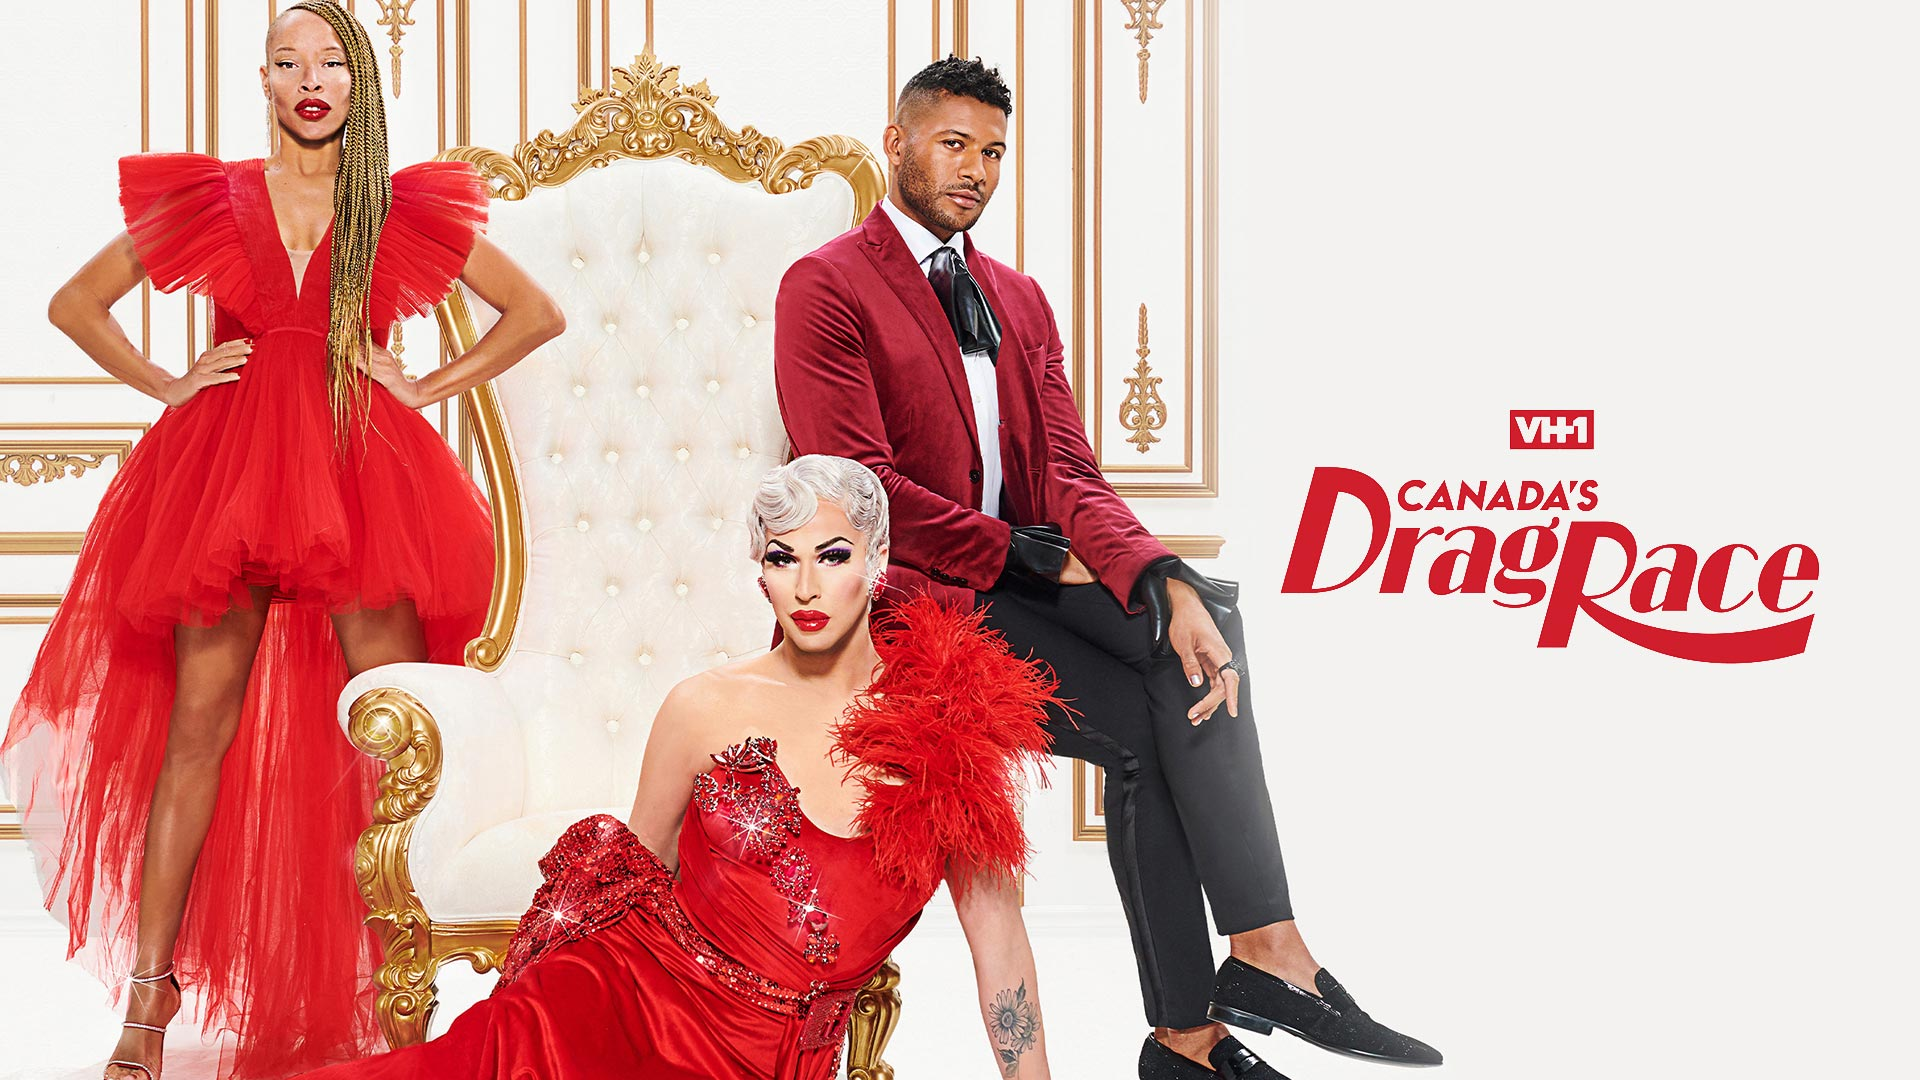 Canada's Drag Race Season 1